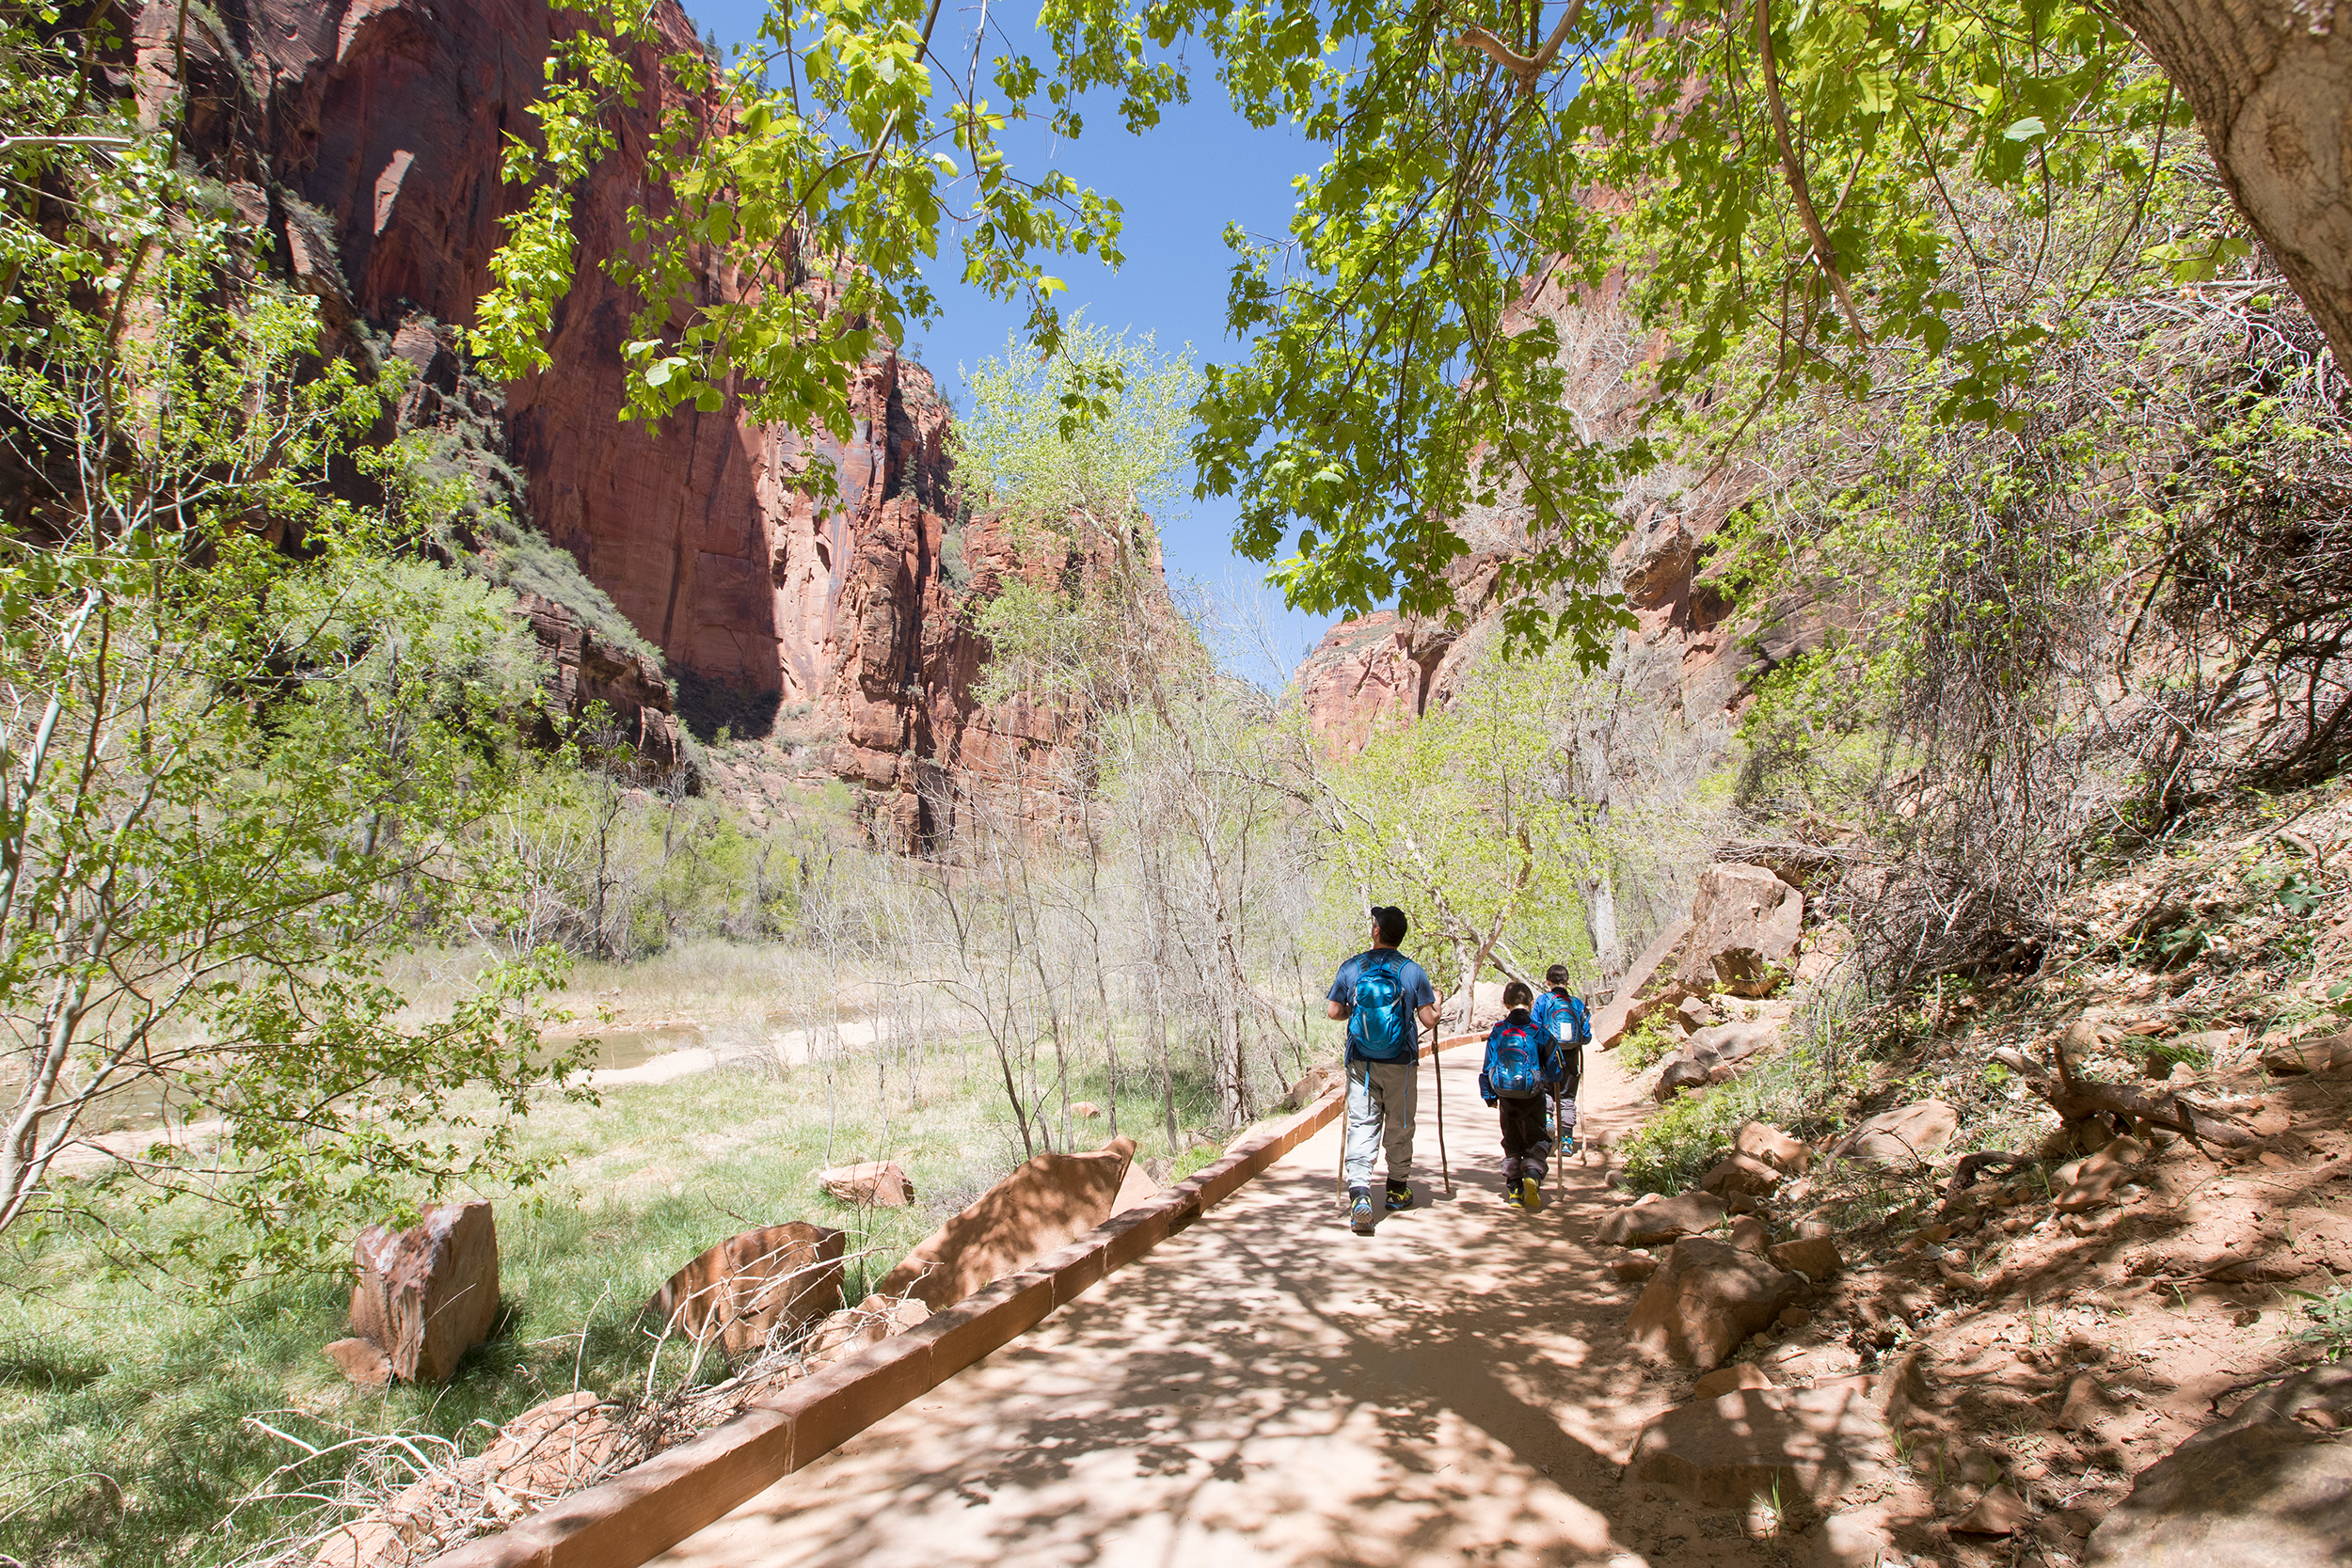 NATLPARKING_travel_rv_adventure_zionnarrows_0049_WB